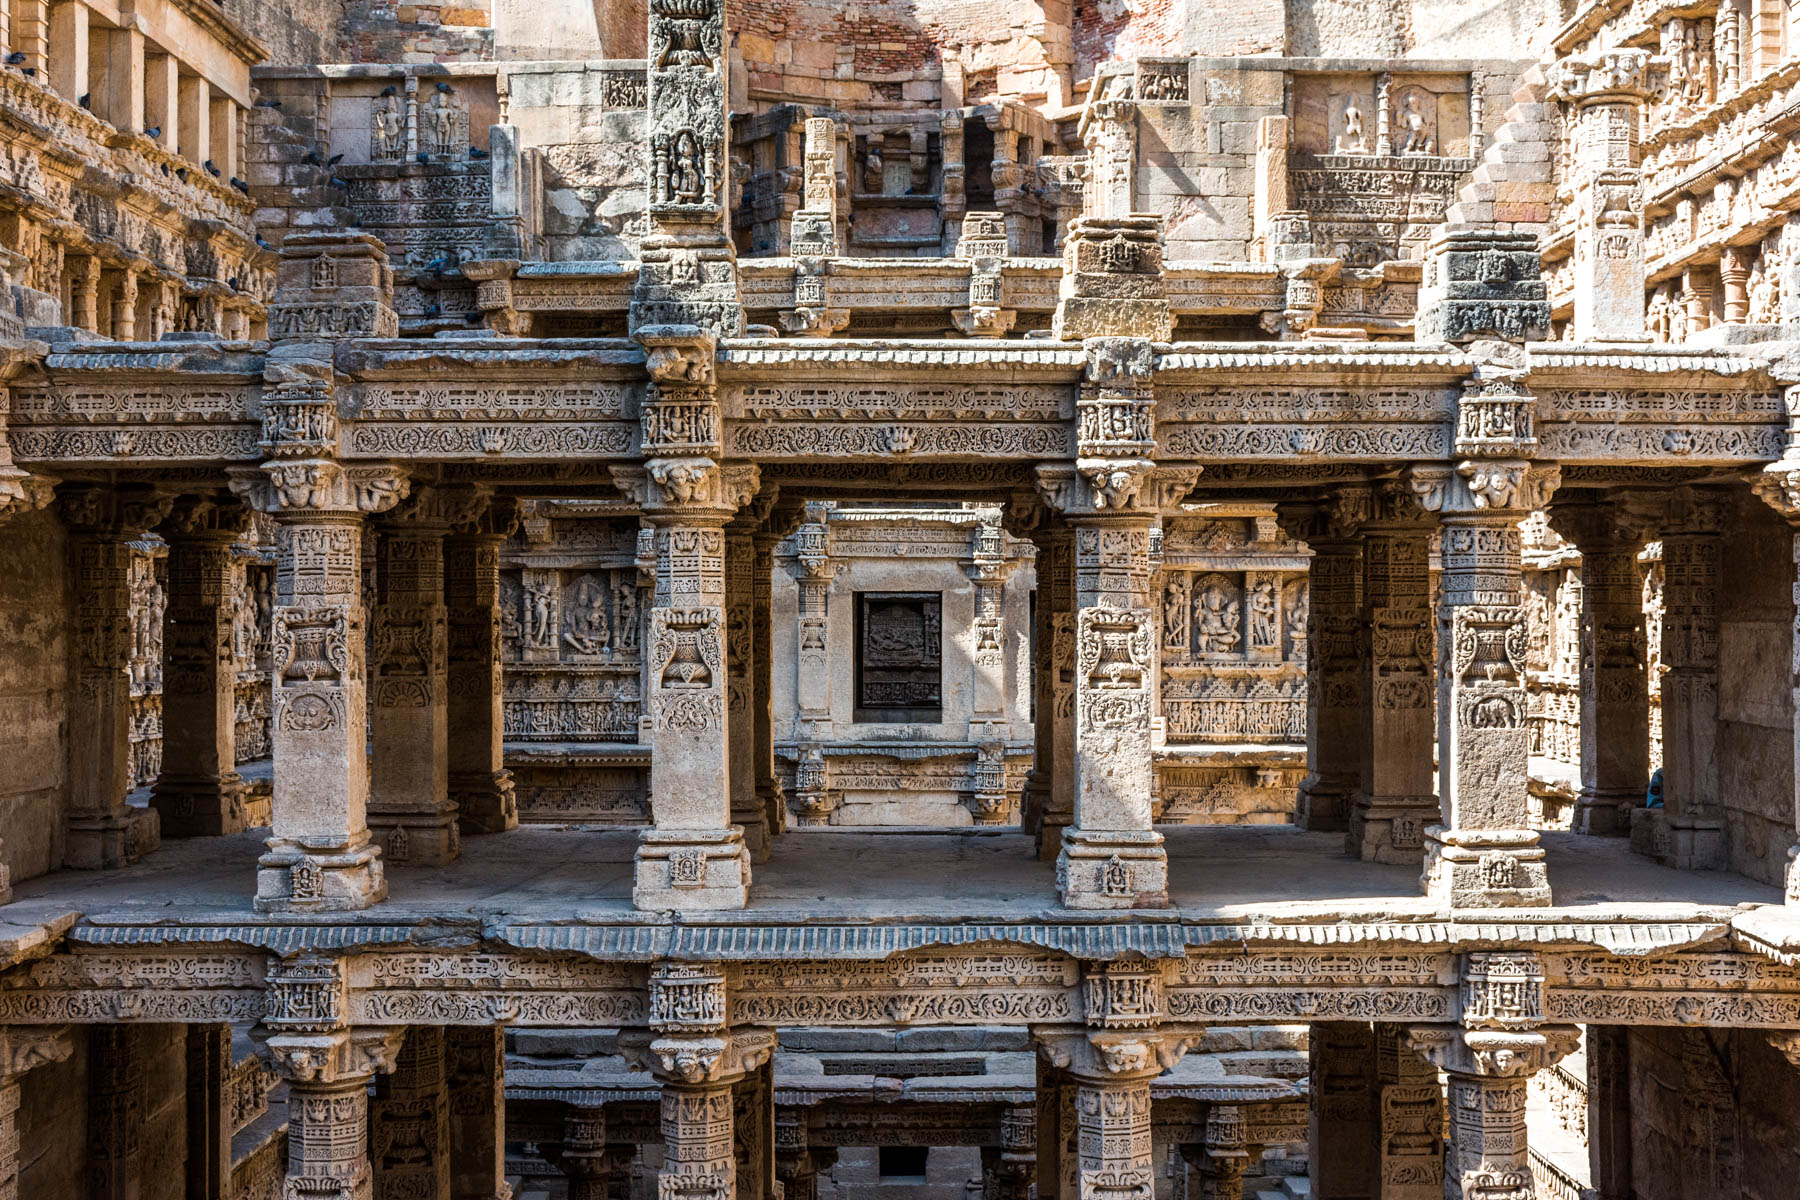 A history of Patola in Patan - Rani Ki Vav step well in Patan, Gujarat, India - Lost With Purpose